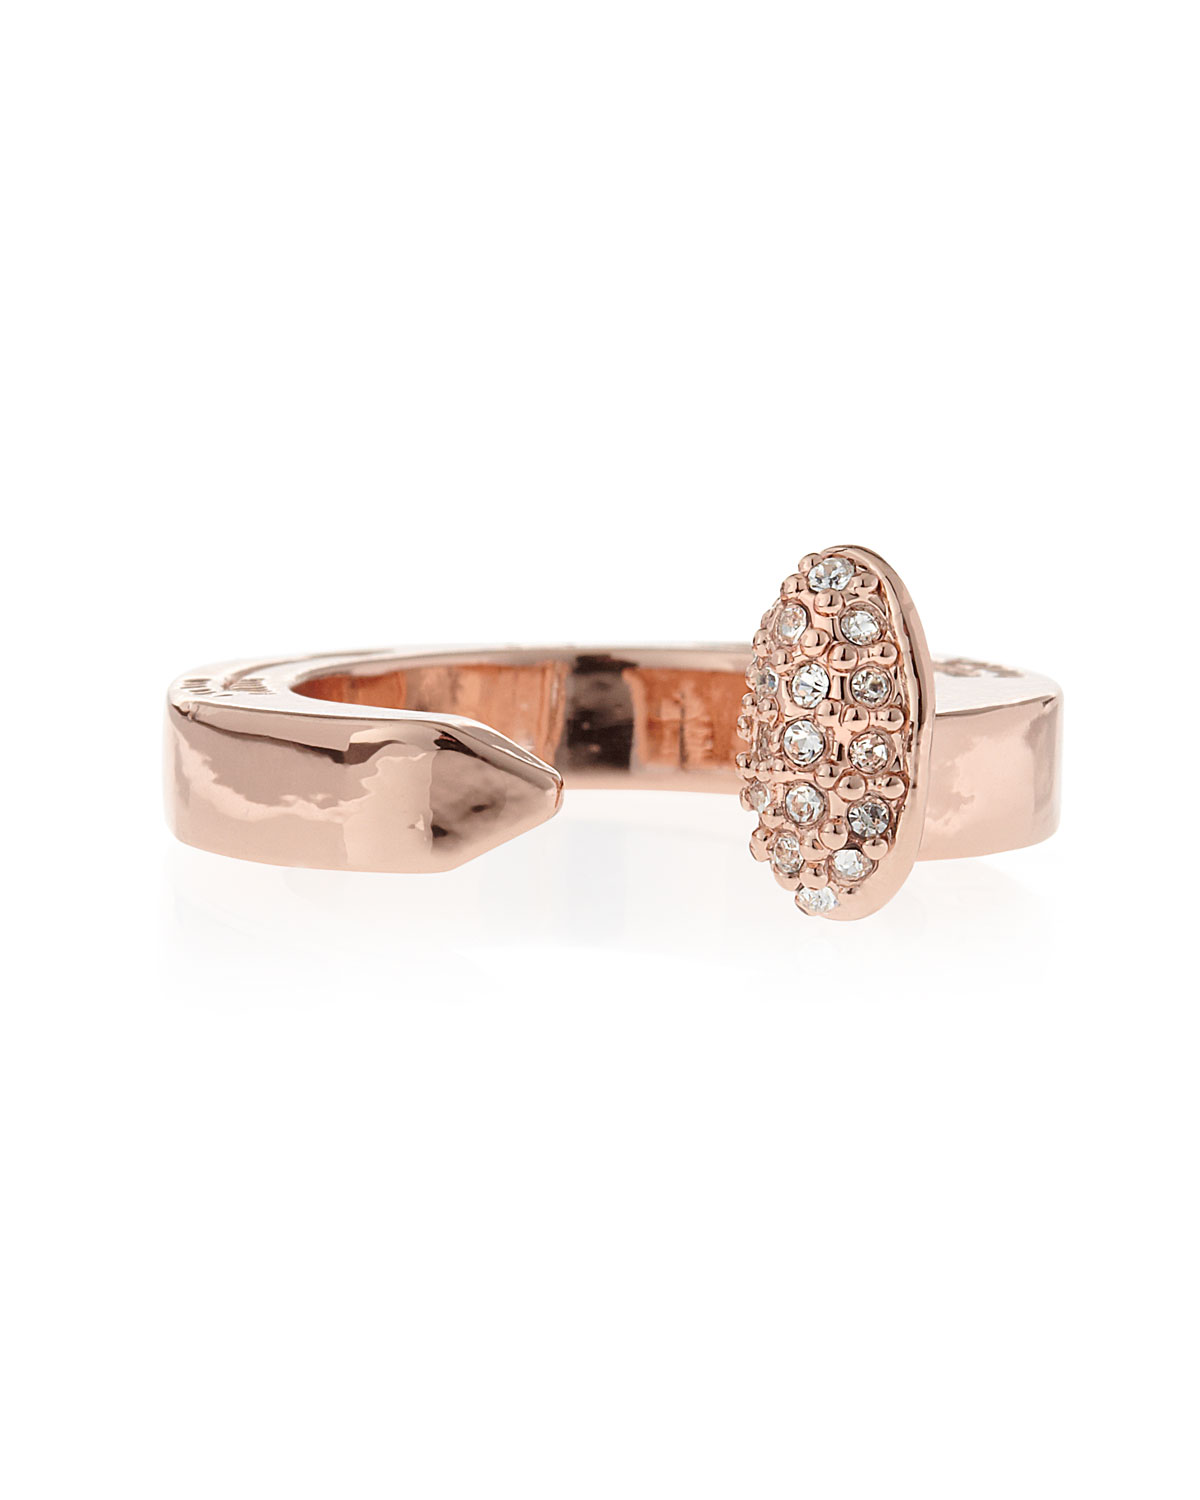 Giles Brother by Philip Crangi Pave Railroad Spike Ring, Rose Golden